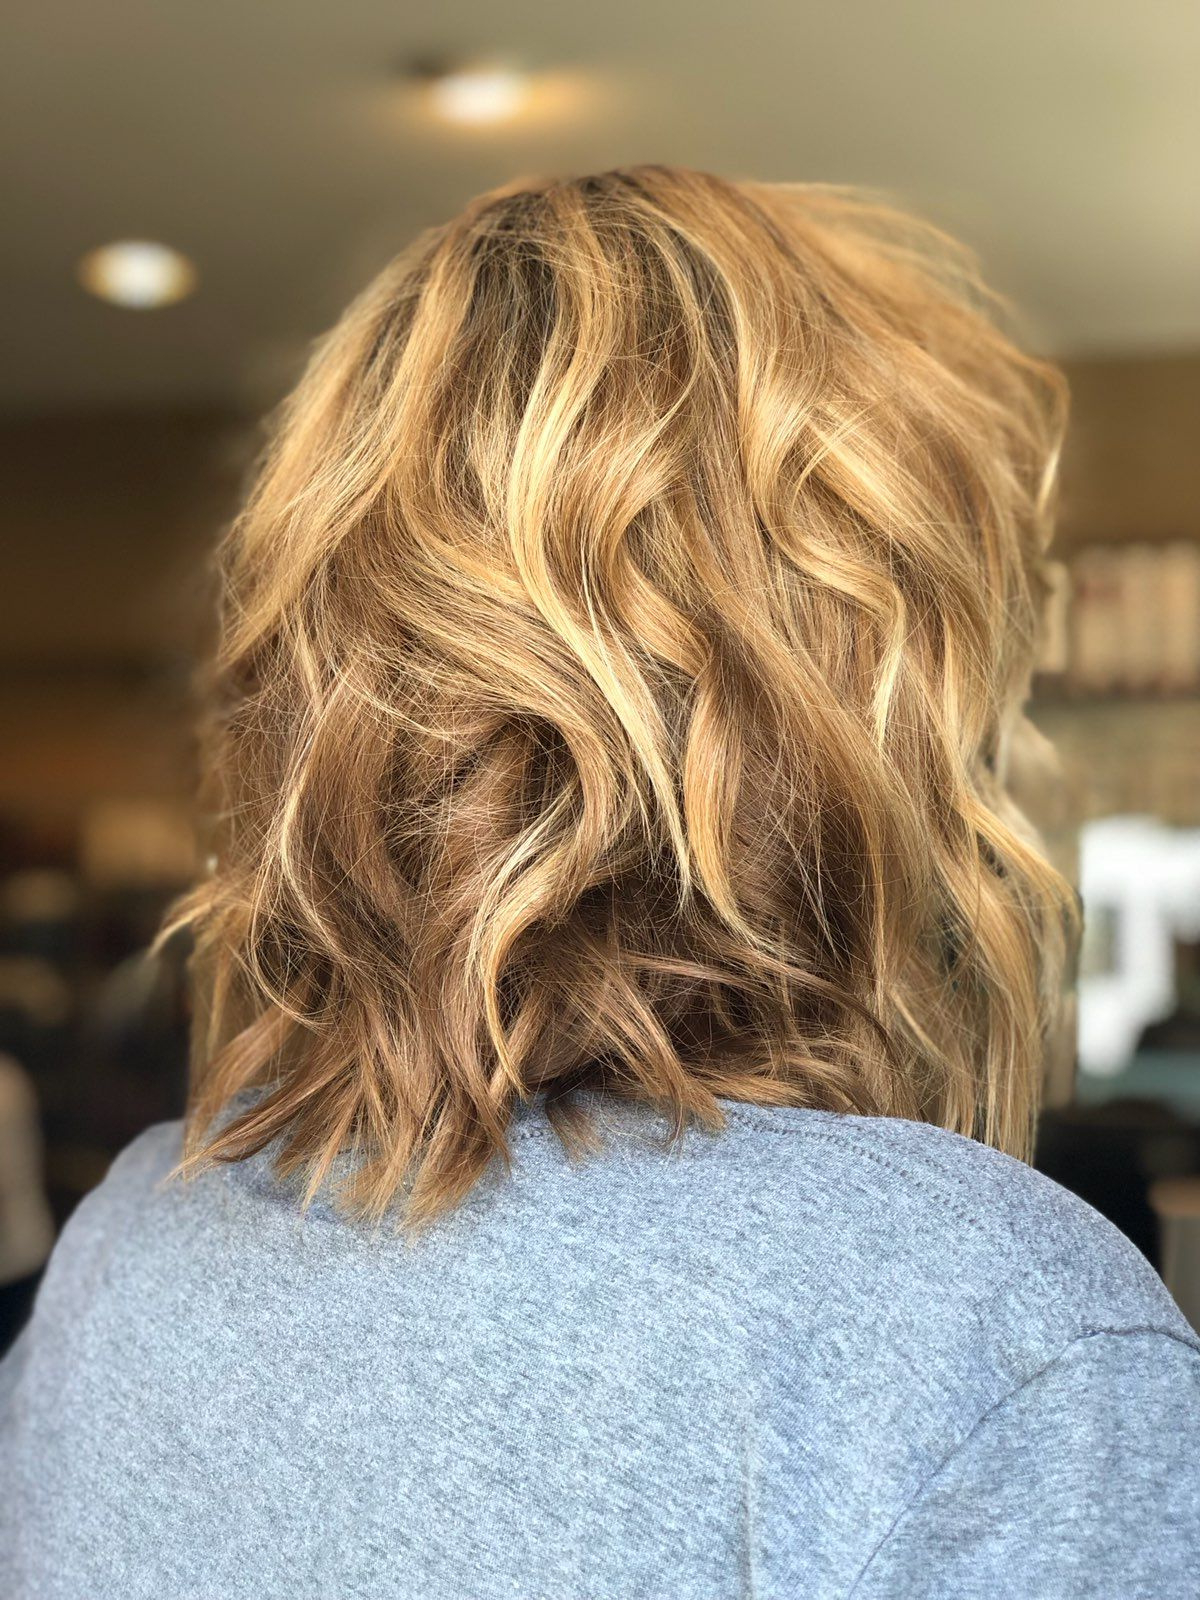 Fashion : Beach Wave Hairstyle Superb Texturized Lob Haircut Pertaining To Latest Wavy Lob Hairstyles With Face Framing Highlights (Gallery 8 of 20)